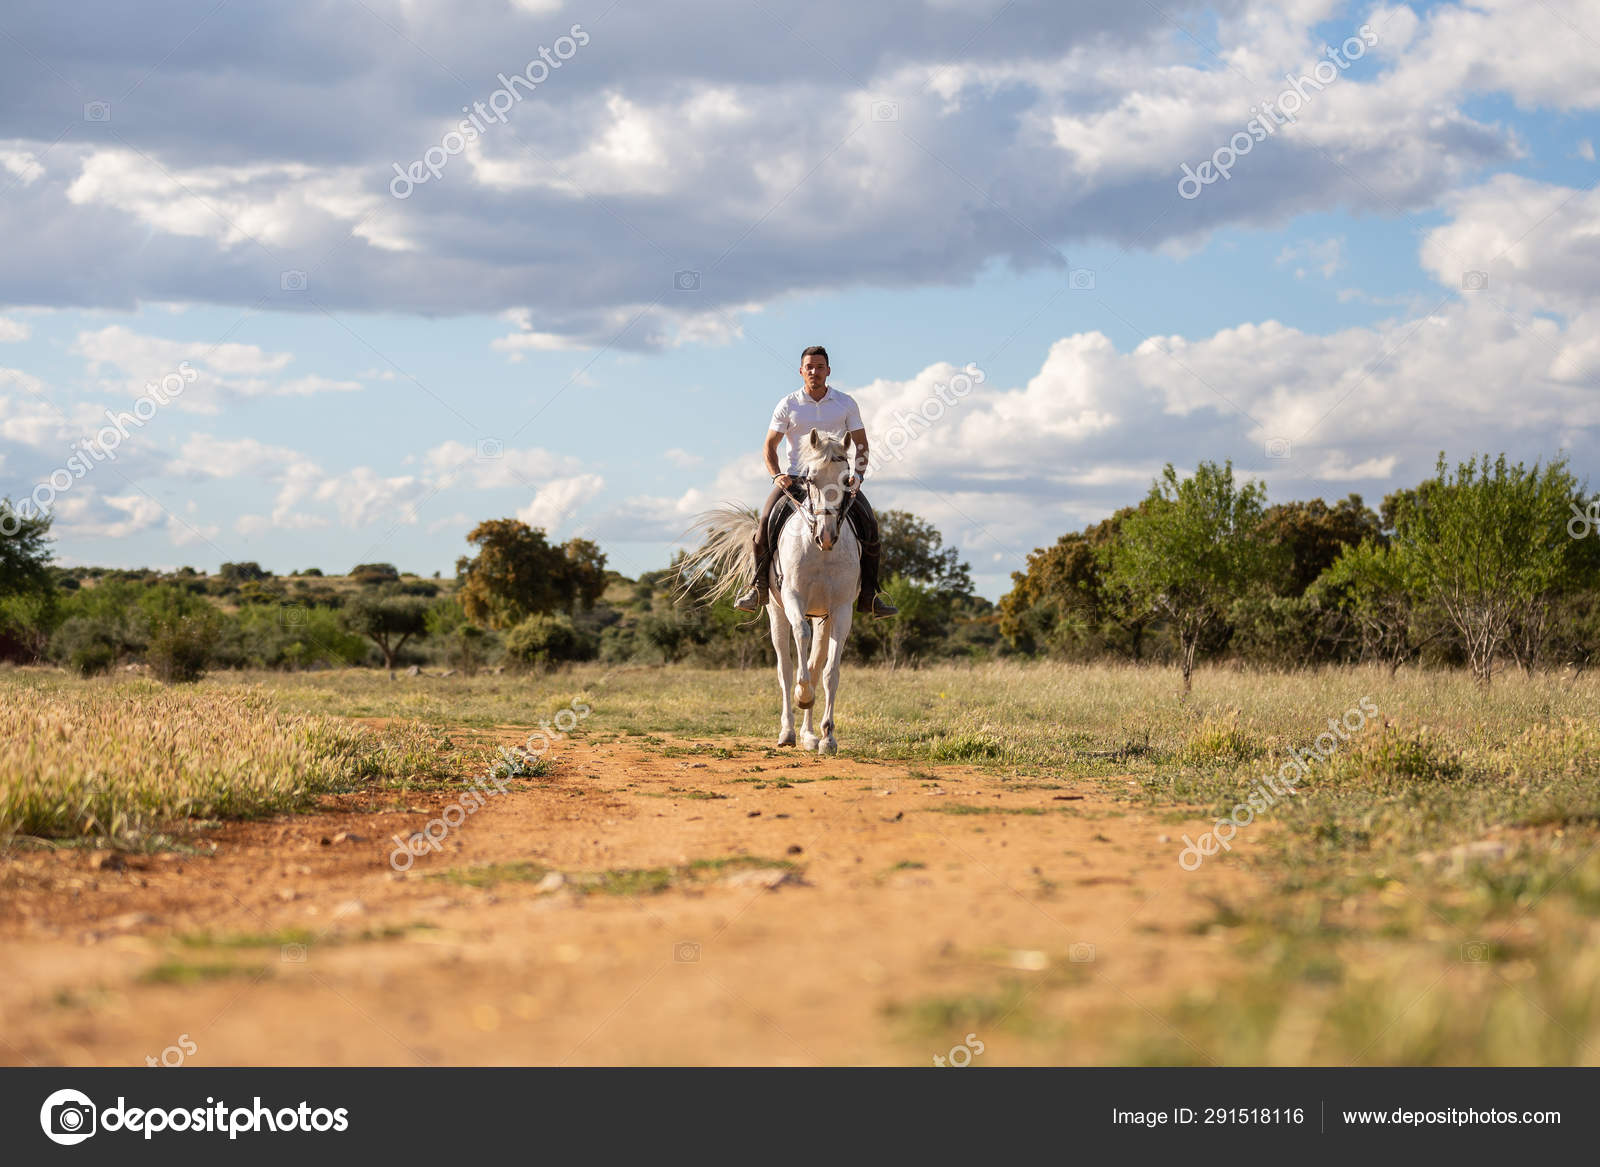 Young Guy Casual Outfit Riding White Horse Sandy Road Stock Photo C Pablobenii 291518116